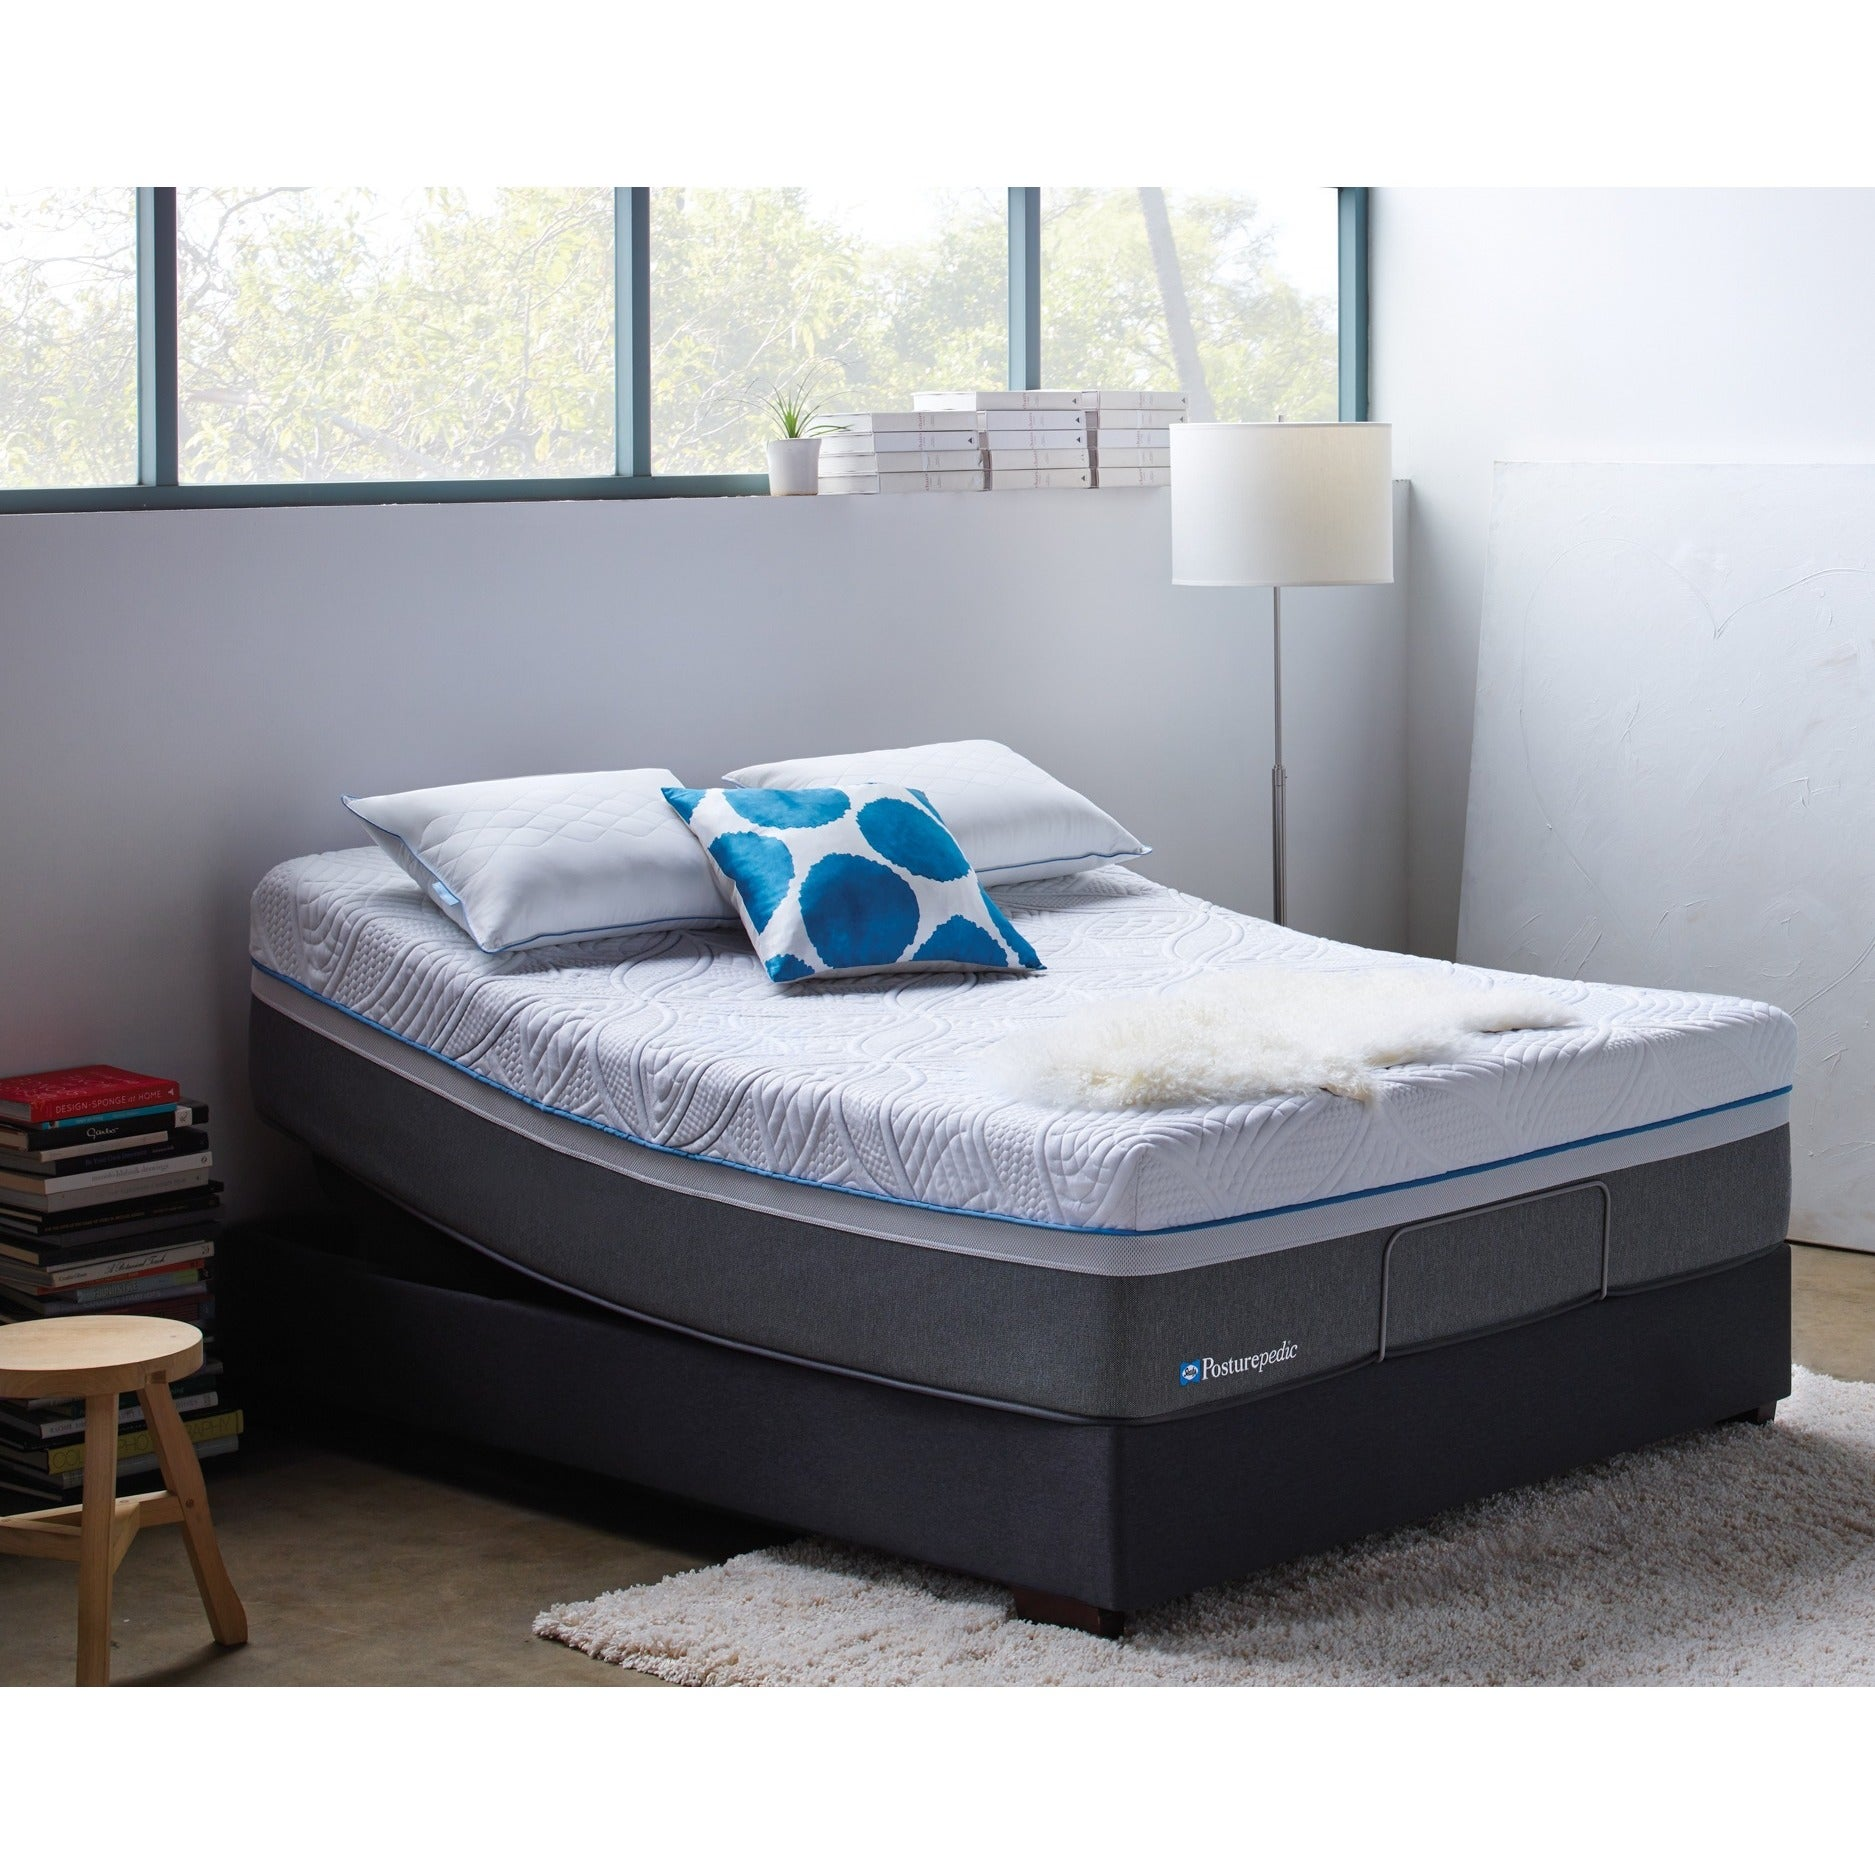 Sealy Posturepedic Hybrid Copper Plush Queen Size Mattress Free Shipping Today 12519499